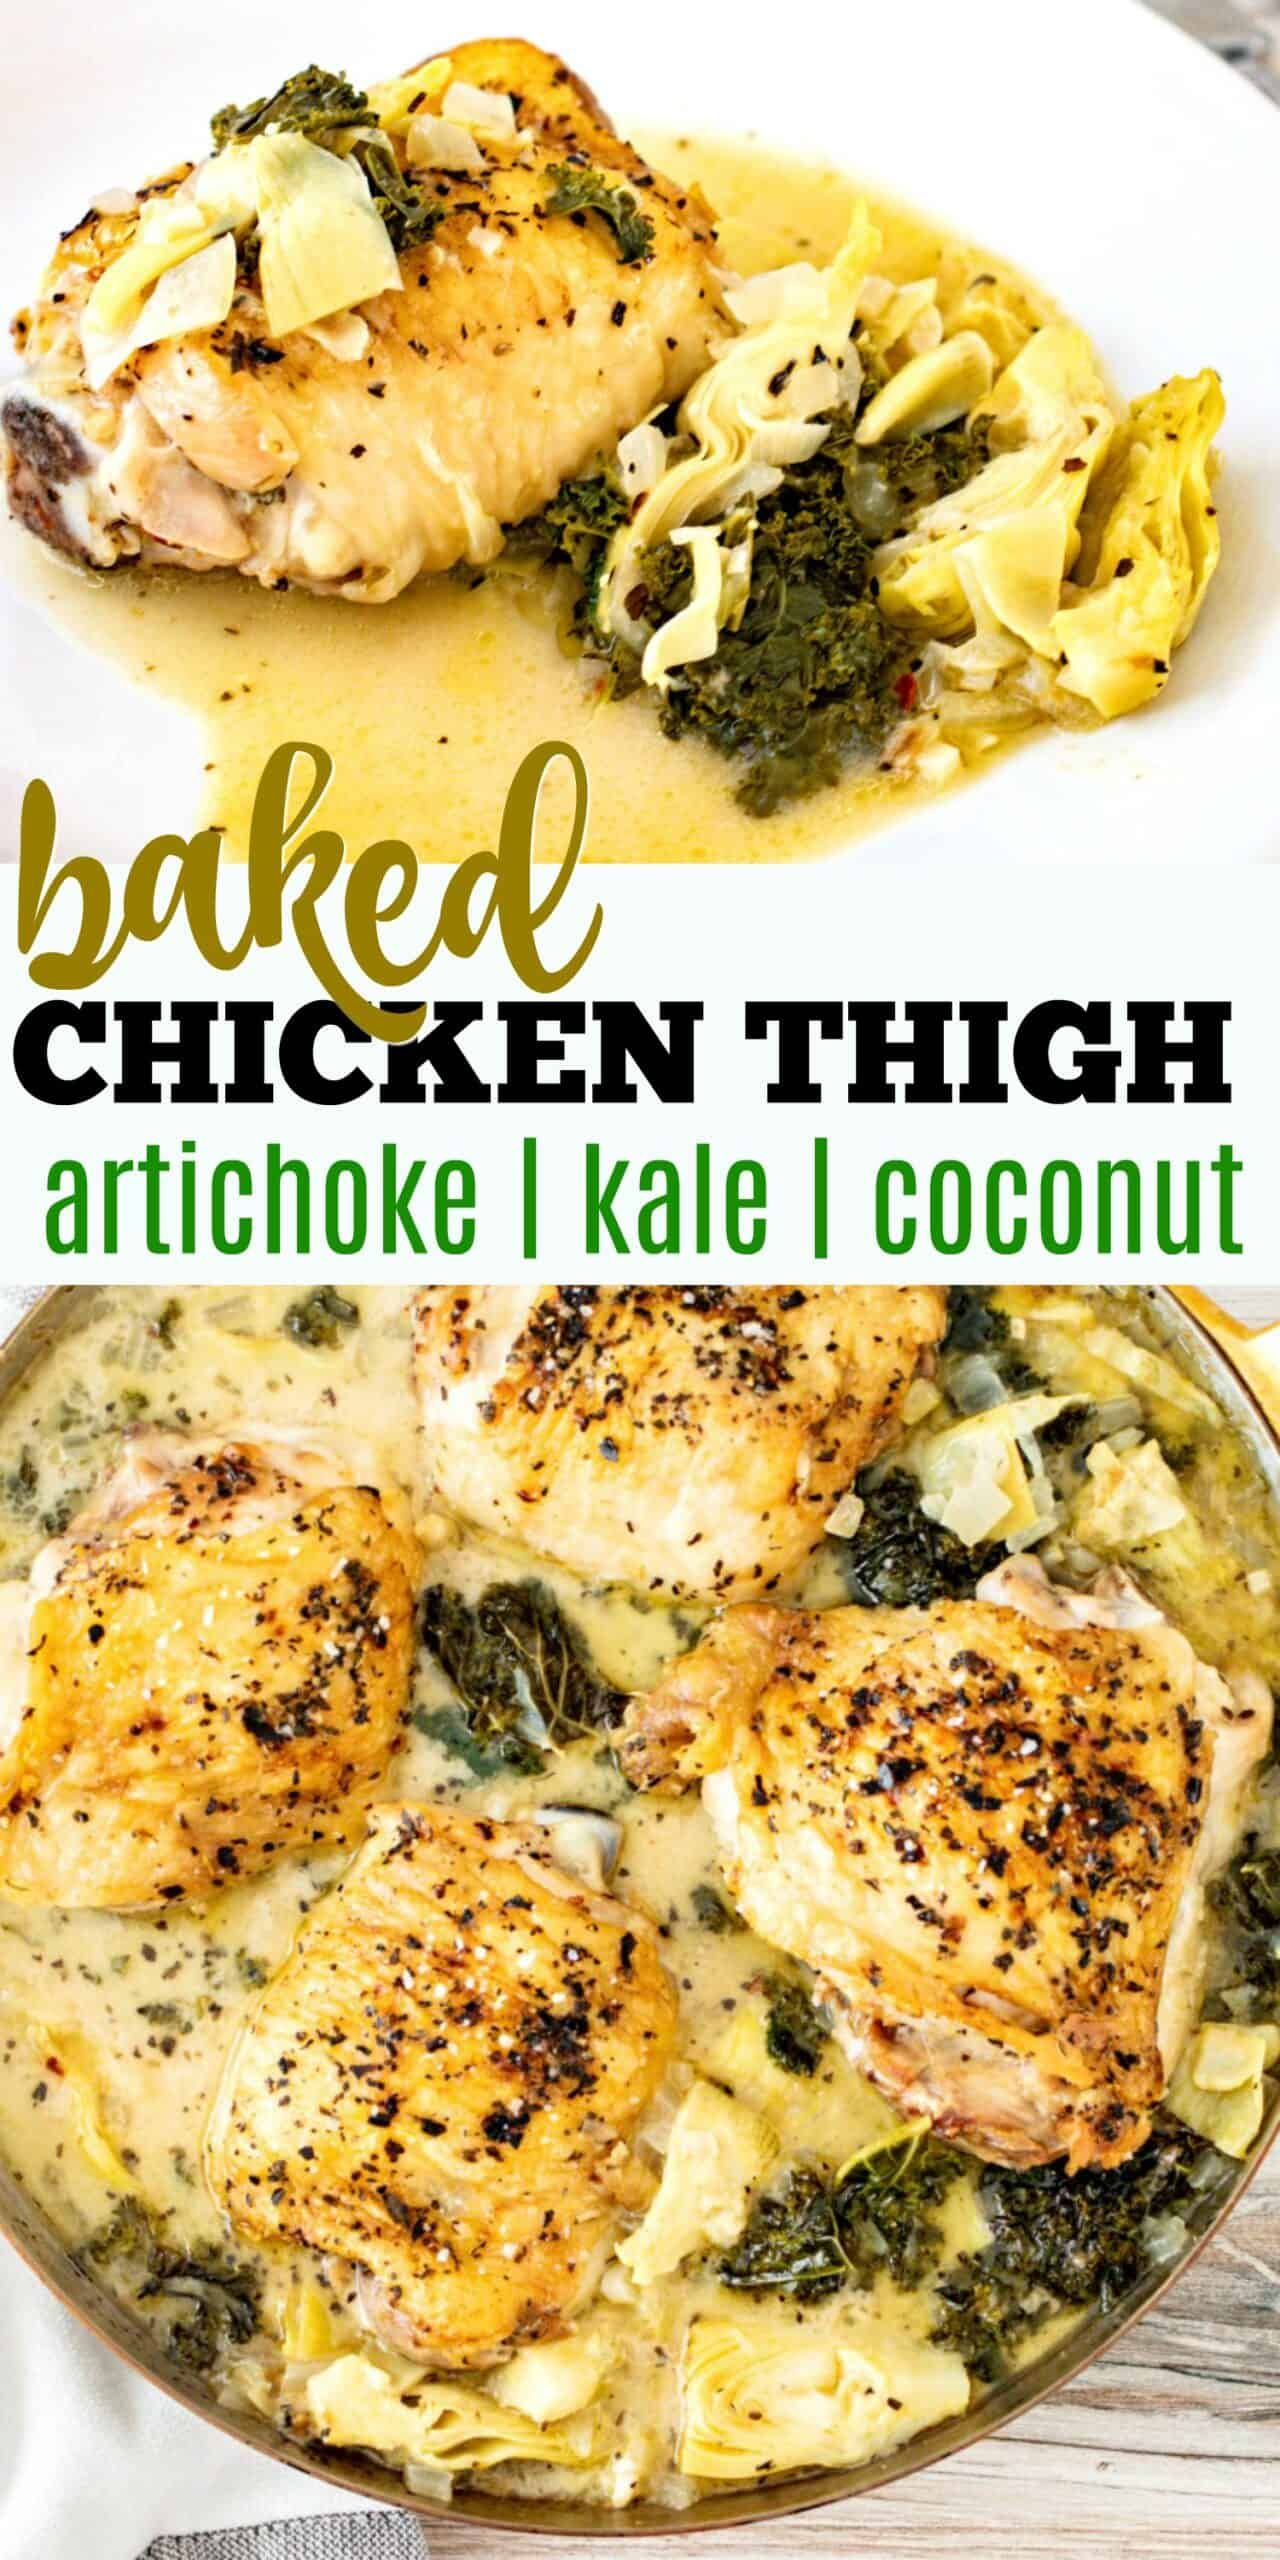 A Creamy Garlic Sauce Elevates Simple Baked Chicken Thighs To New Heights This Delicious Low Ca Baked Chicken Thighs Baked Chicken Chicken Thigh Recipes Baked